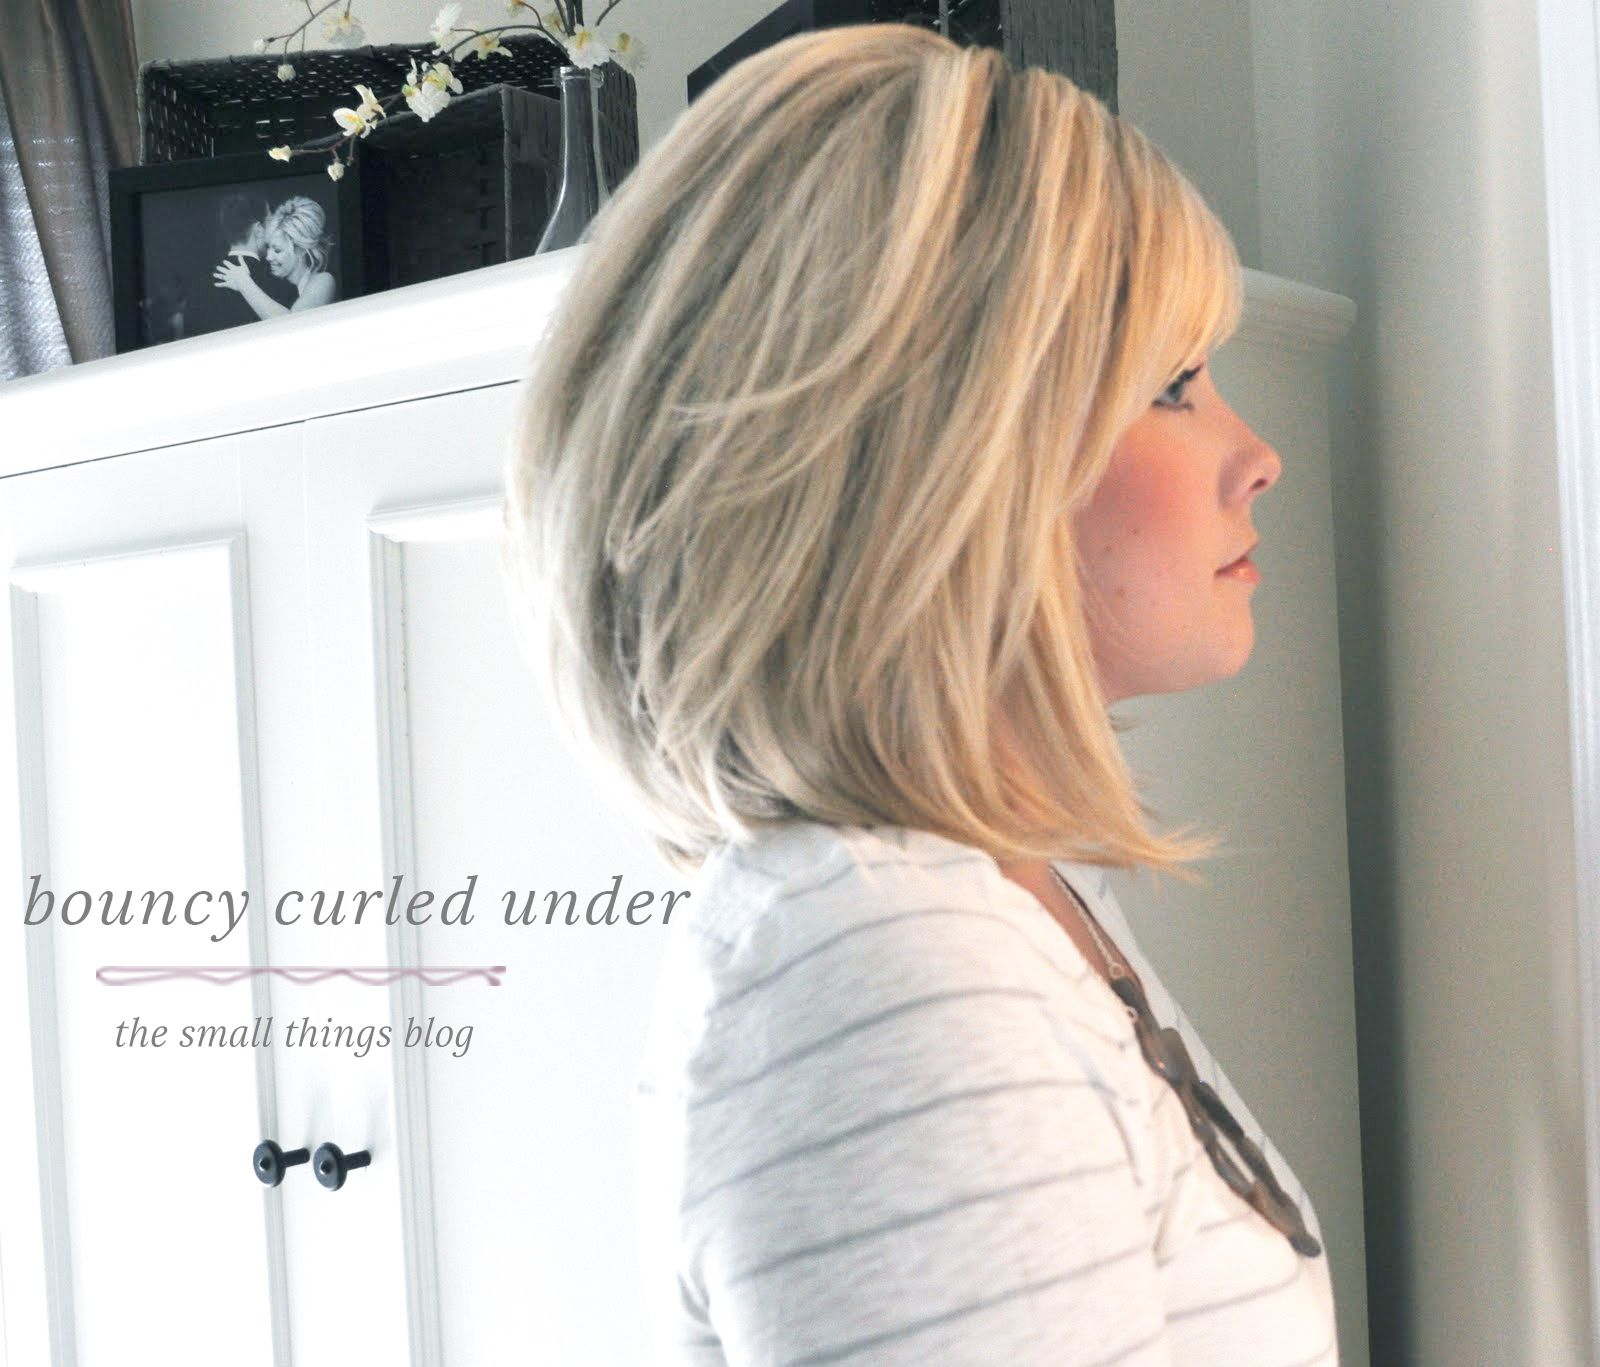 Bouncy curled under from the small things blog new hair styles